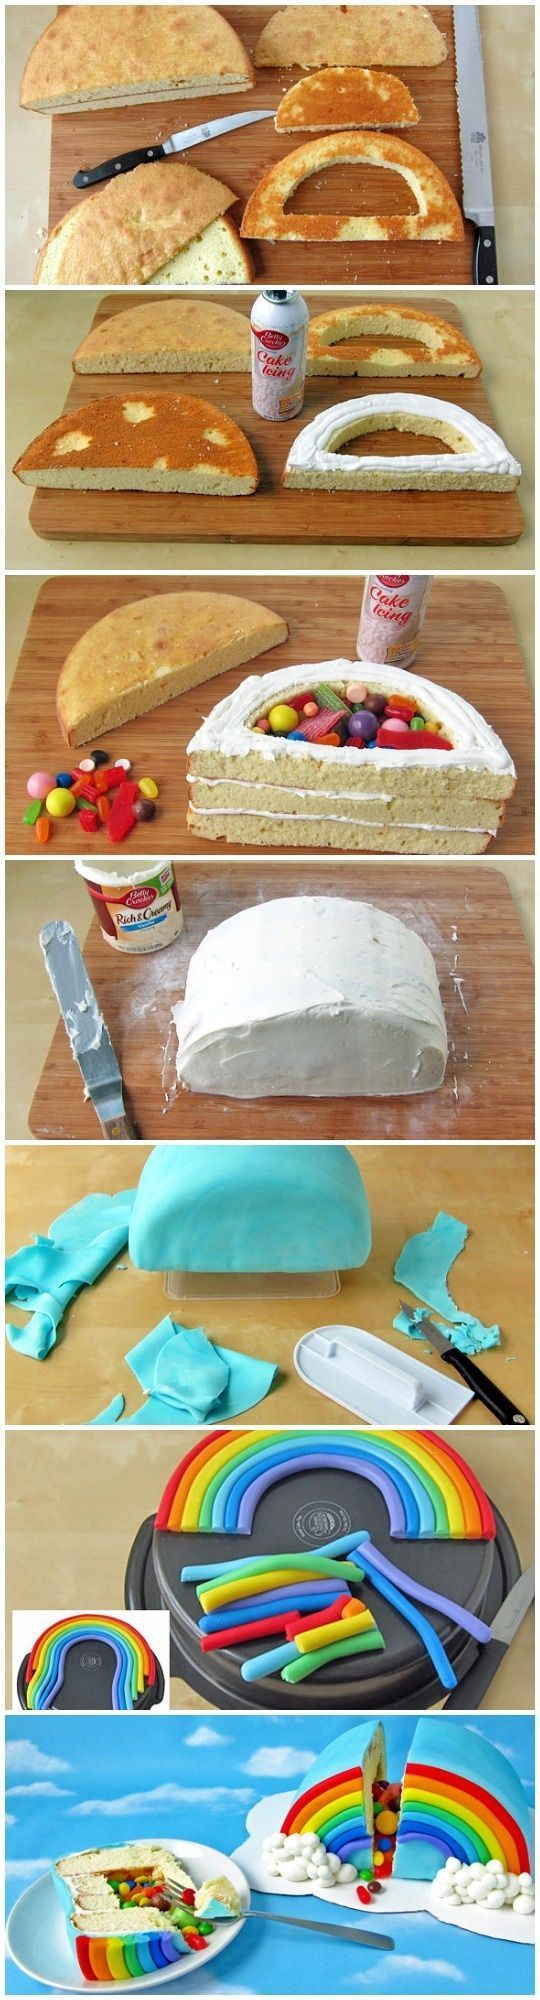 Surprise Rainbow Piñata Cake.